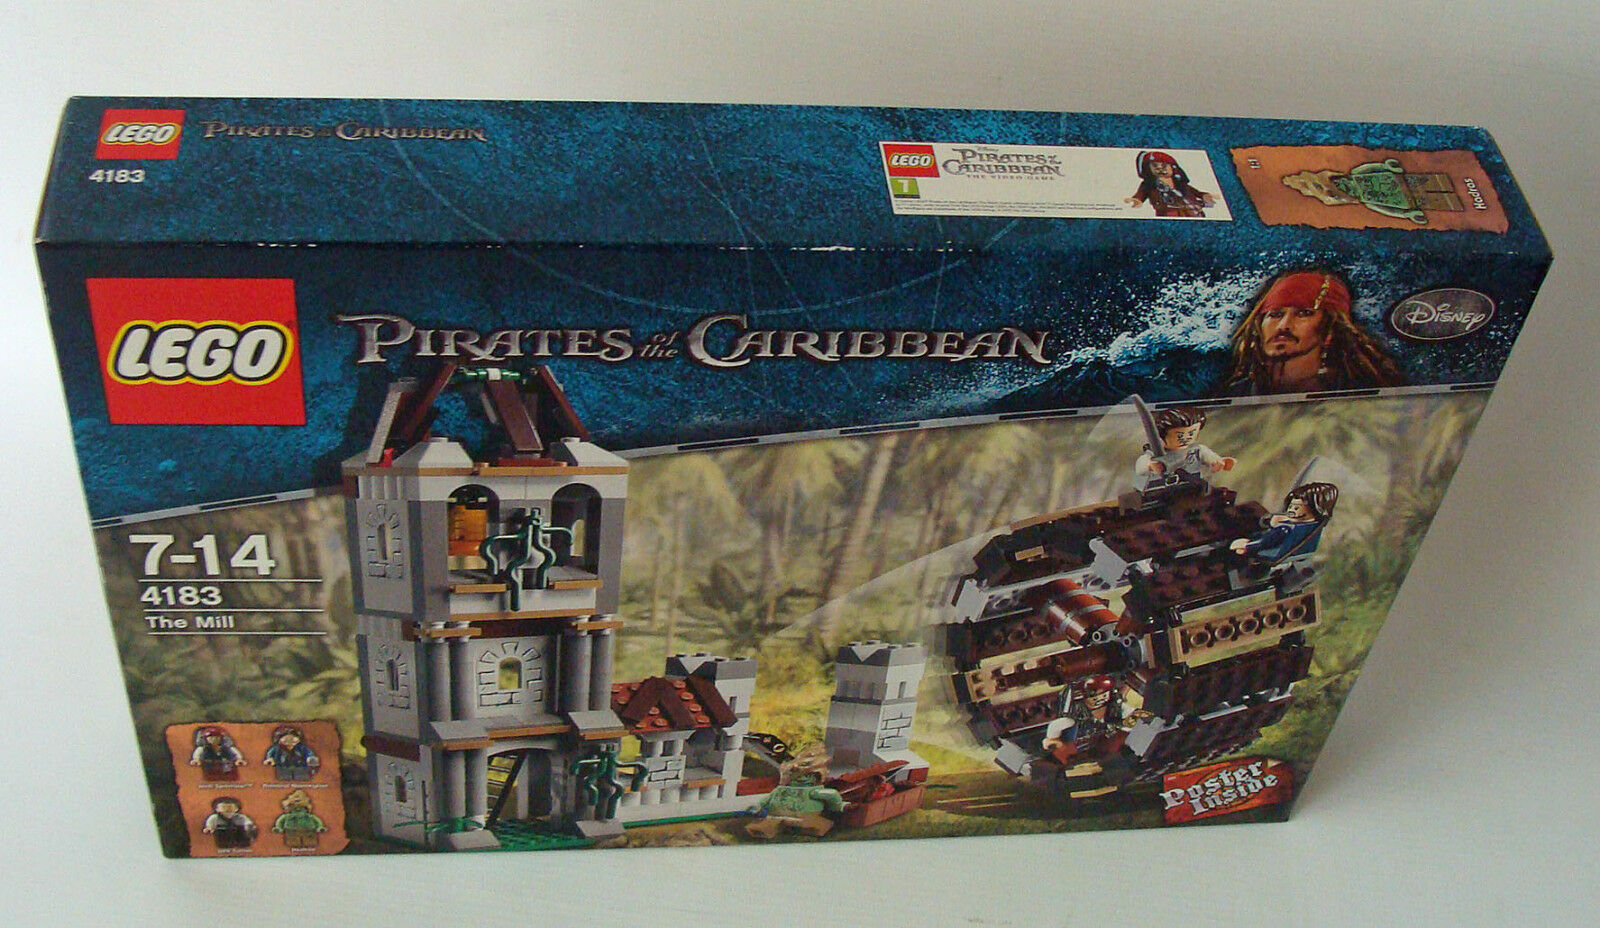 LEGO ® Pirates of the Caribbean 4183 duello nell'Mulino 365 parti 7-14 J. - NUOVO